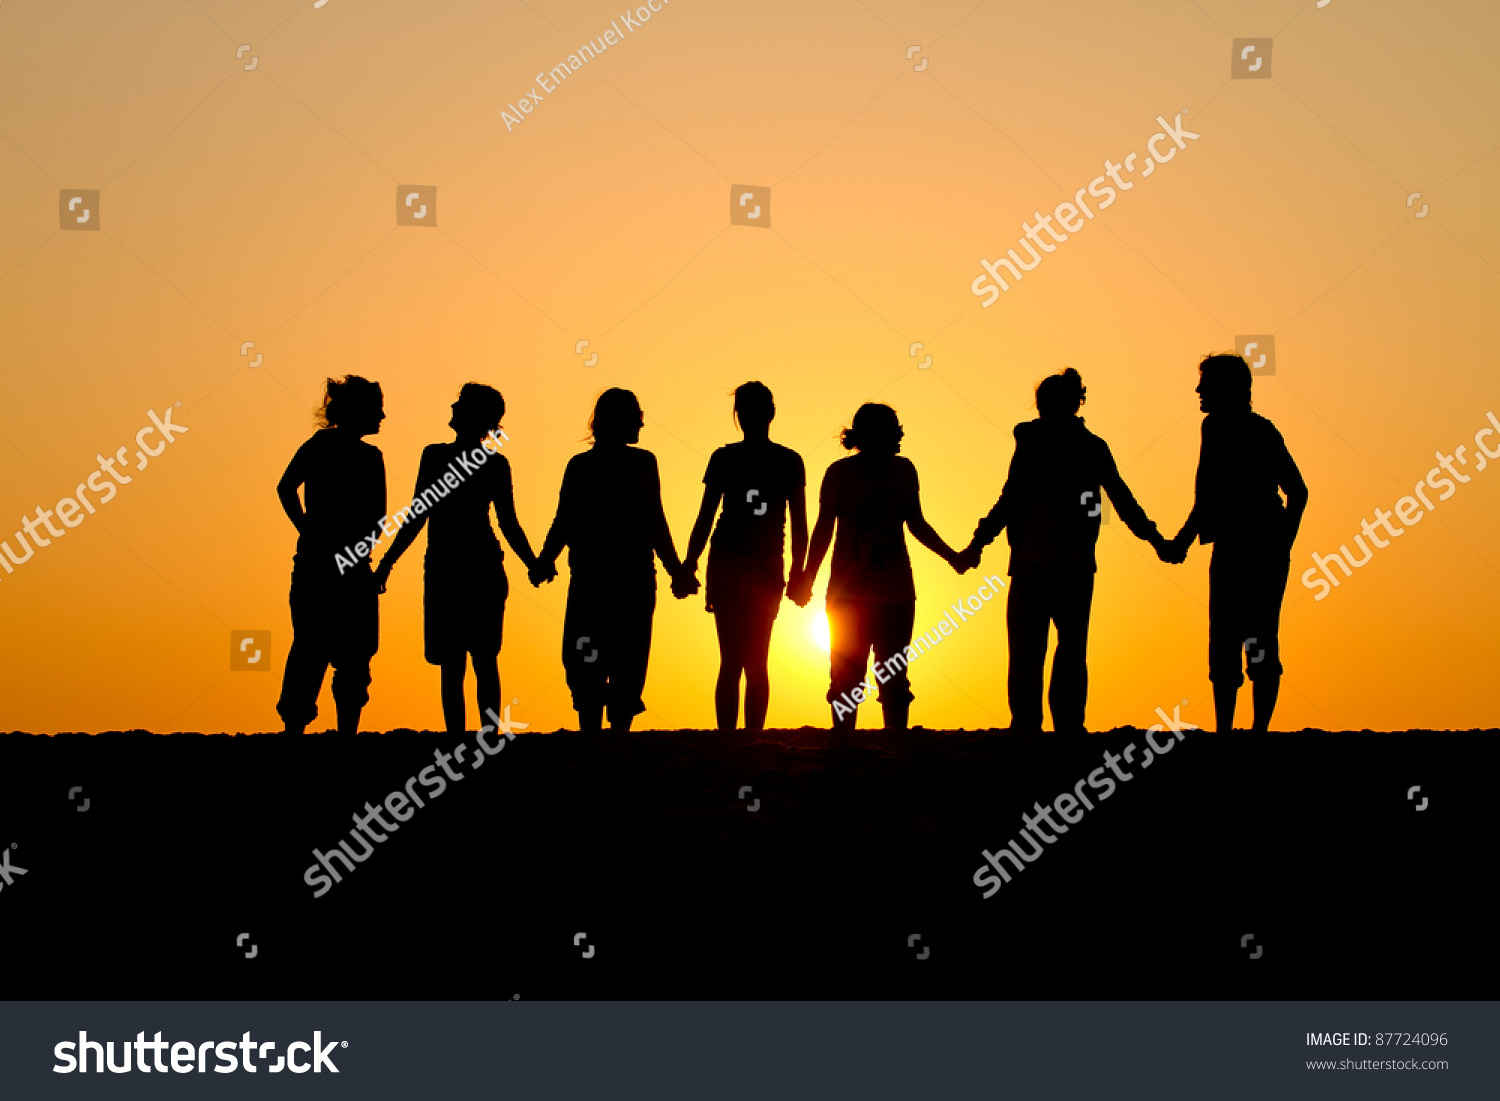 stars in the sky dating and friendship agency Find stars in the sky - dating & friendship agencies in seven sisters, n15 6rd - 118118com uk local directory find the business you are looking for in your city.